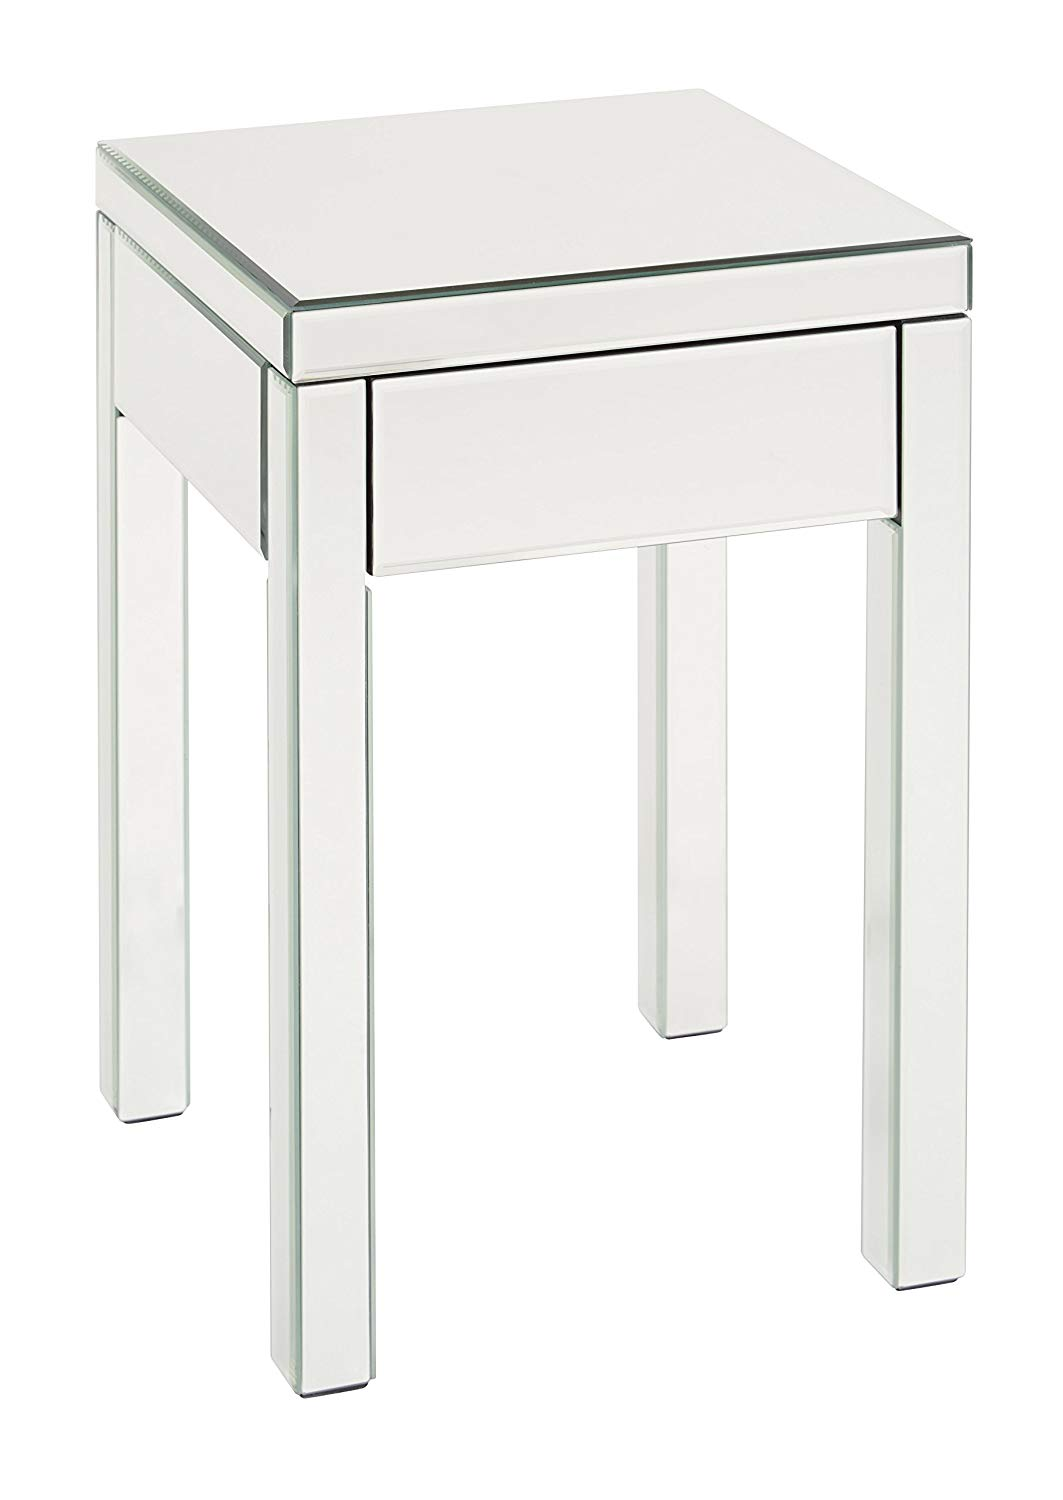 AVE SIX Reflections End Table